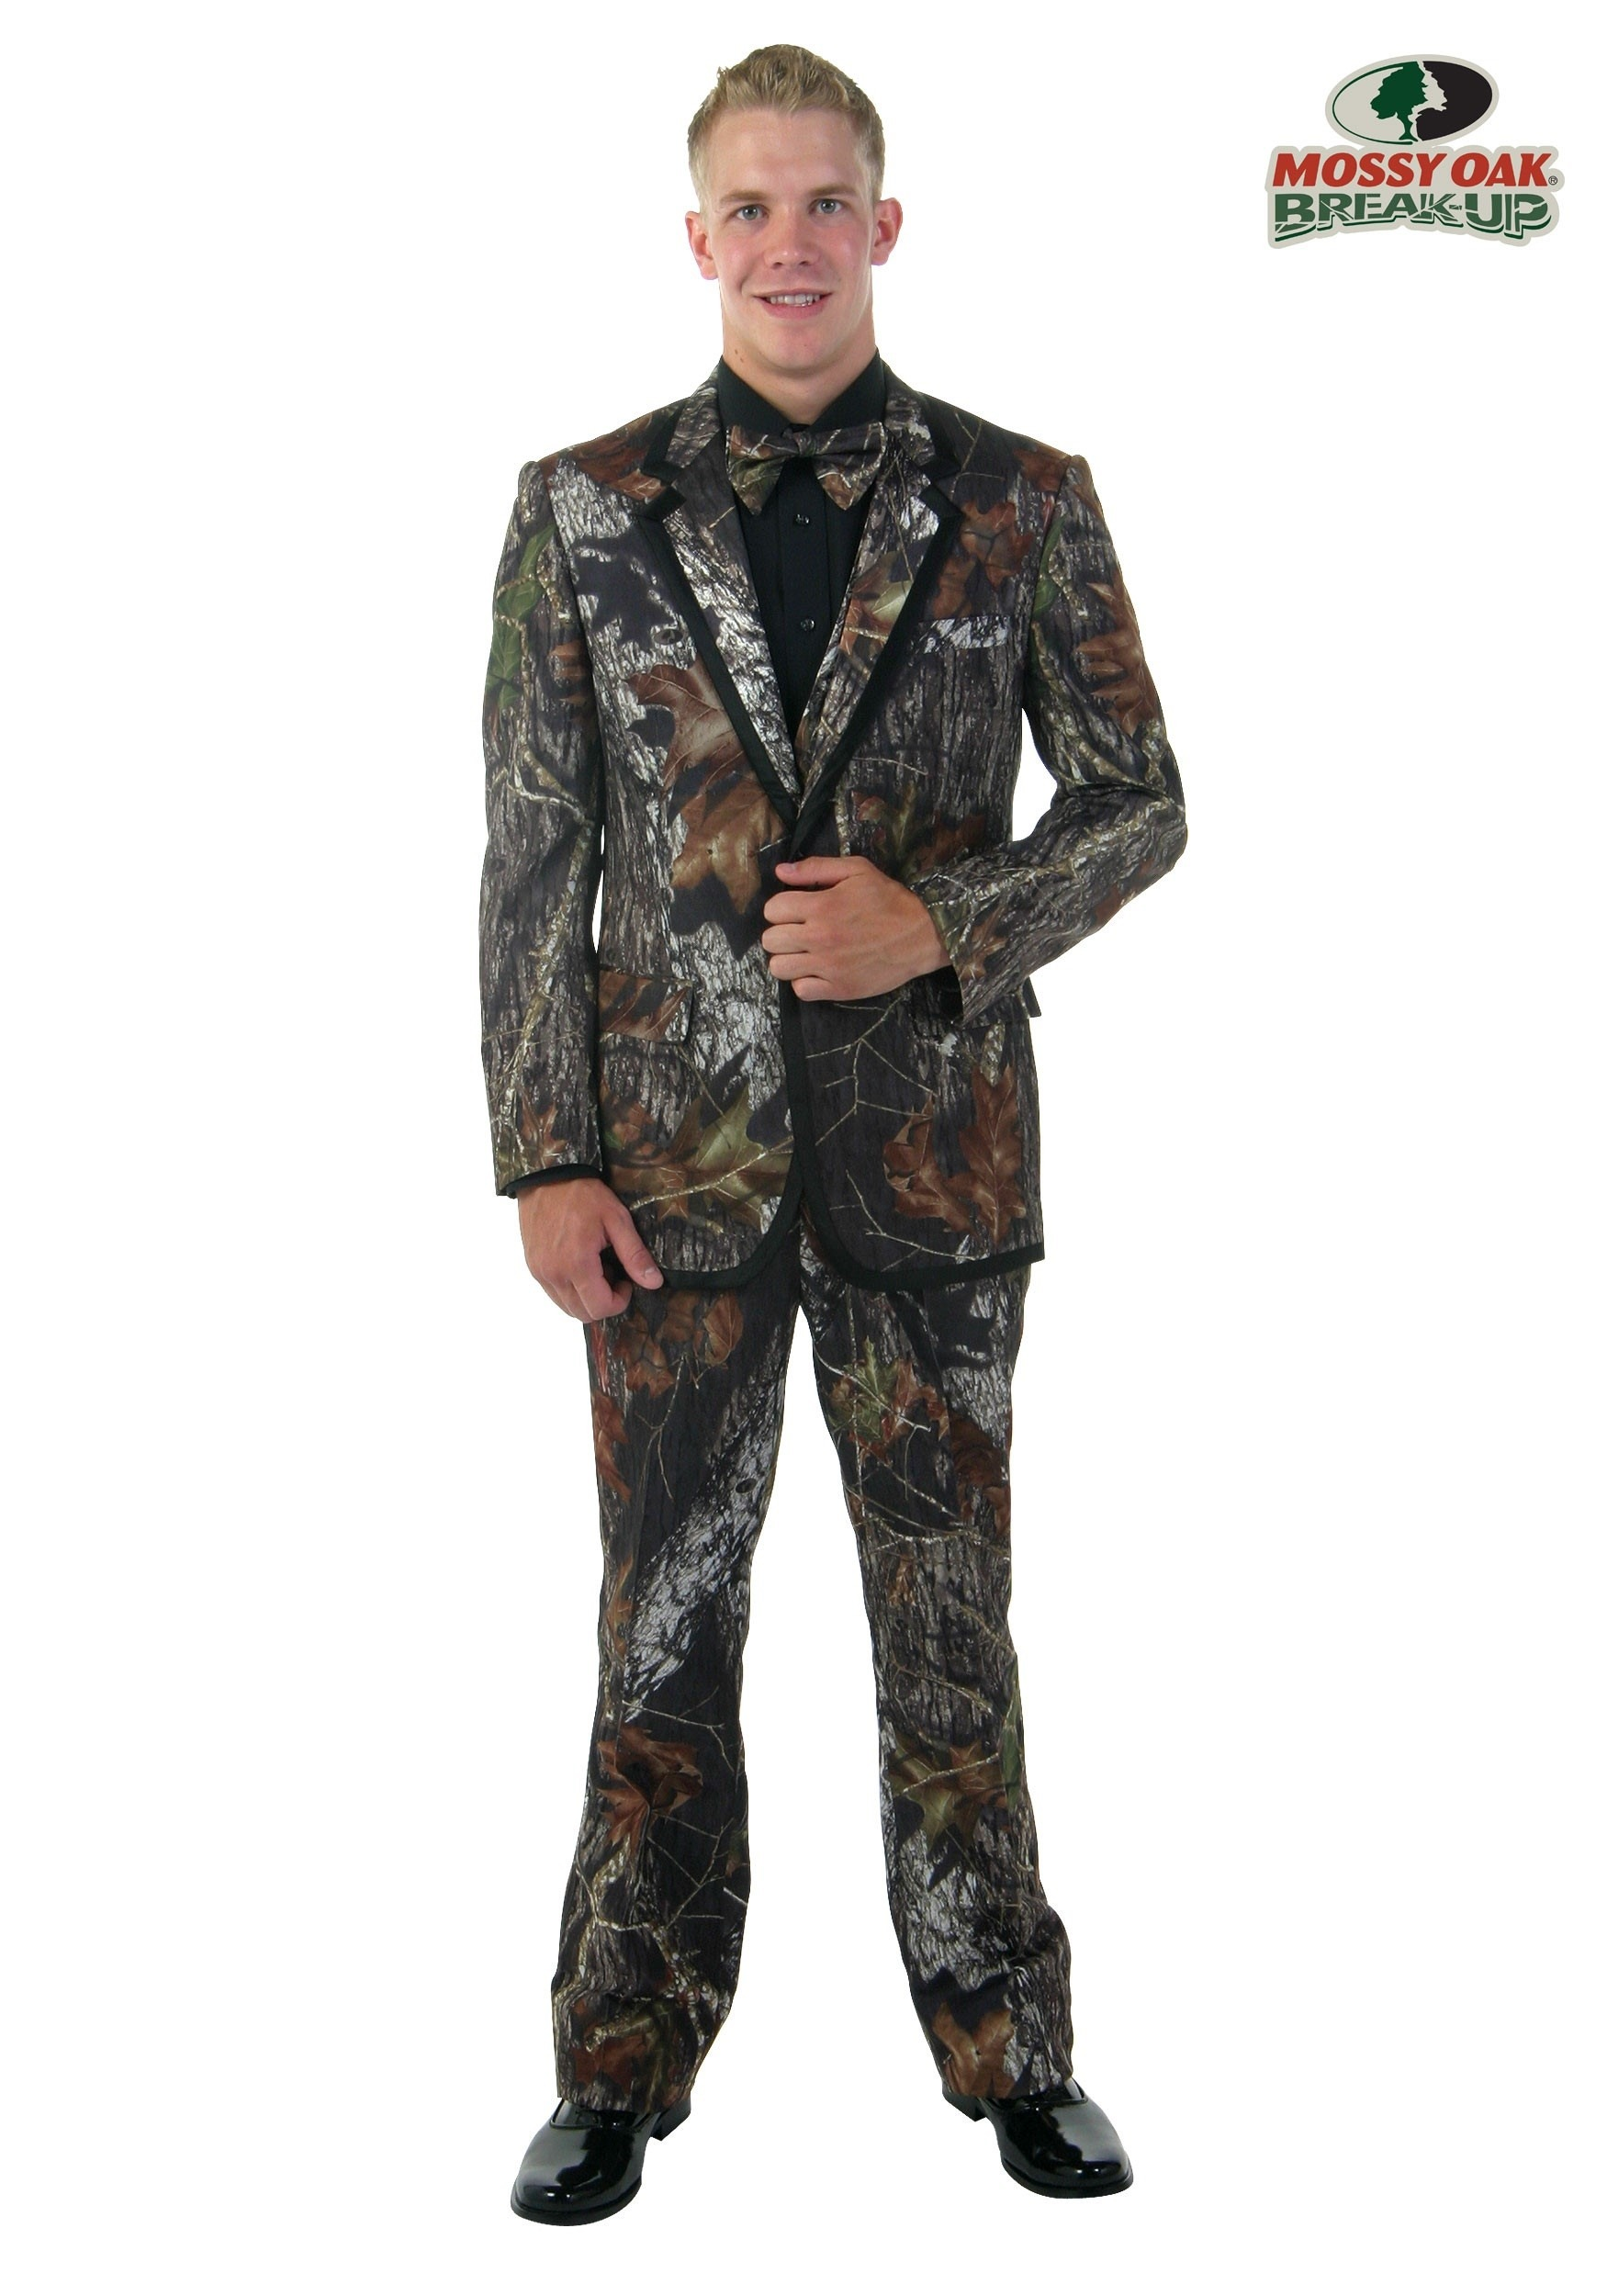 Mossy Oak New Break-Up Alpine Tuxedo - Men\'s Camouflage Tuxedos